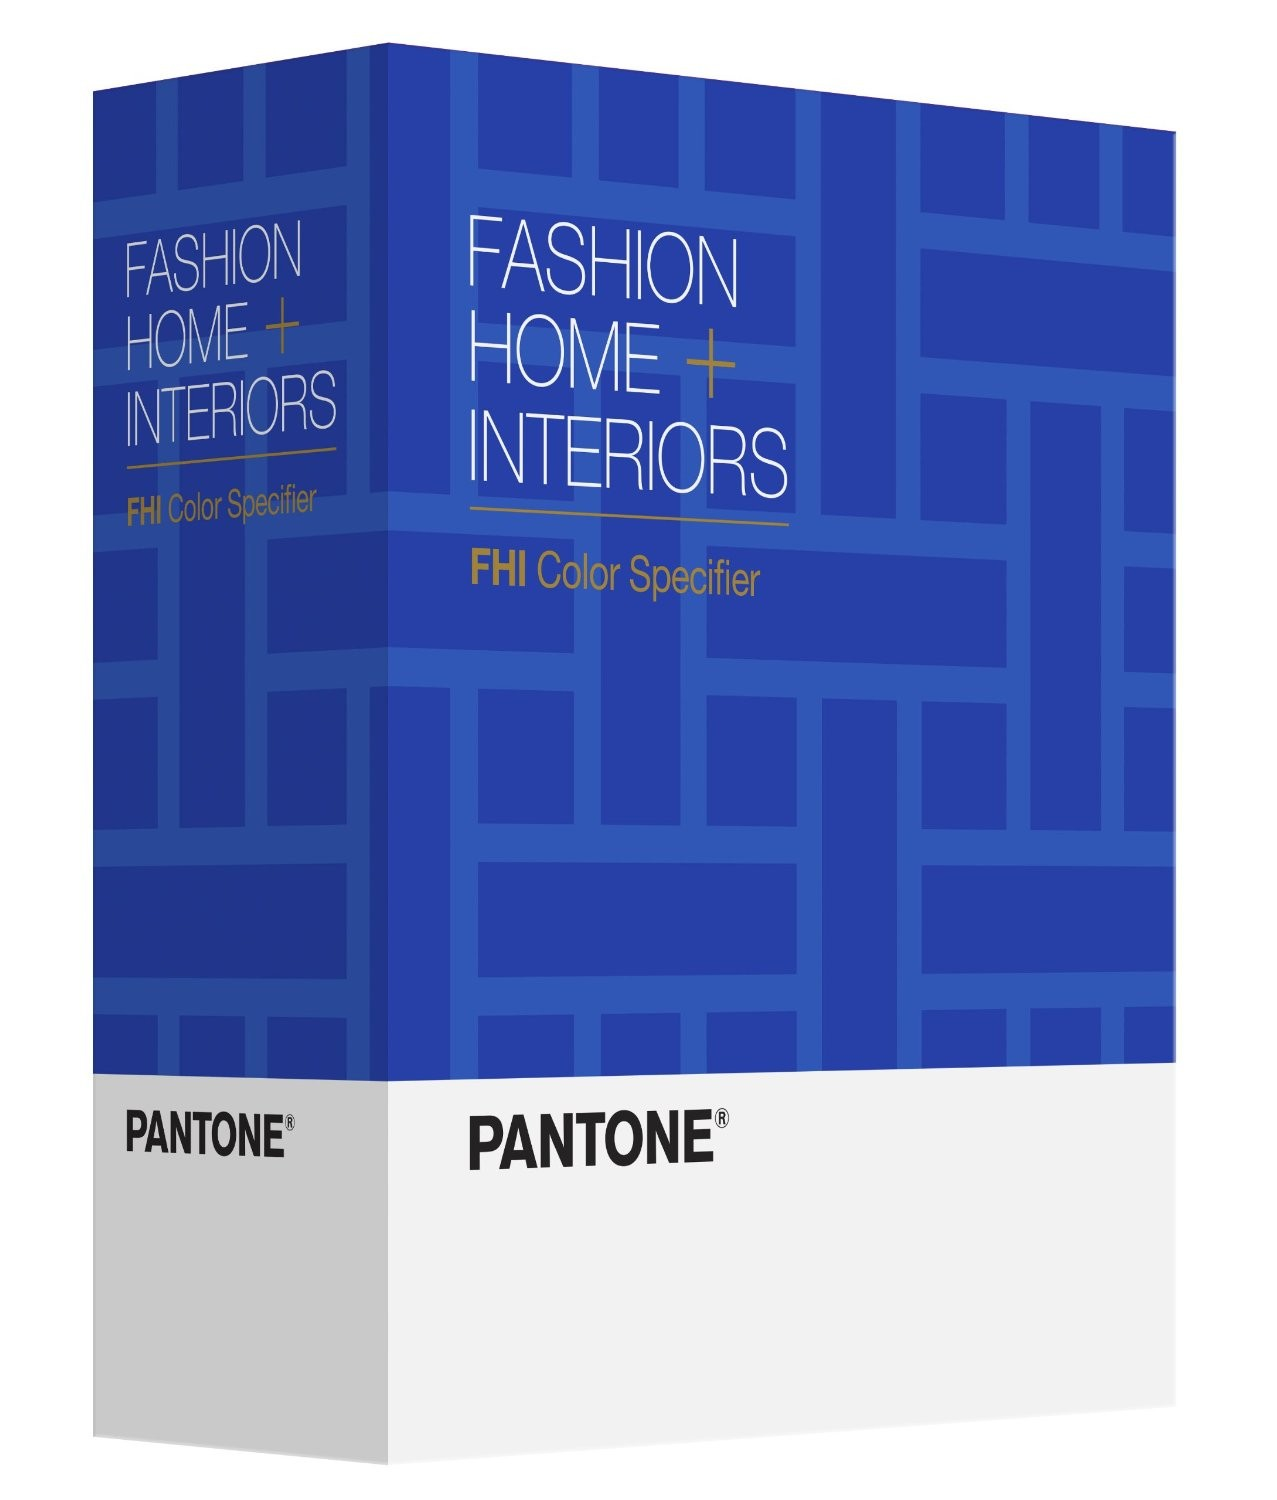 Pantone TPX Specifier Chips Set FBP200 Fashion + Home + Interiors